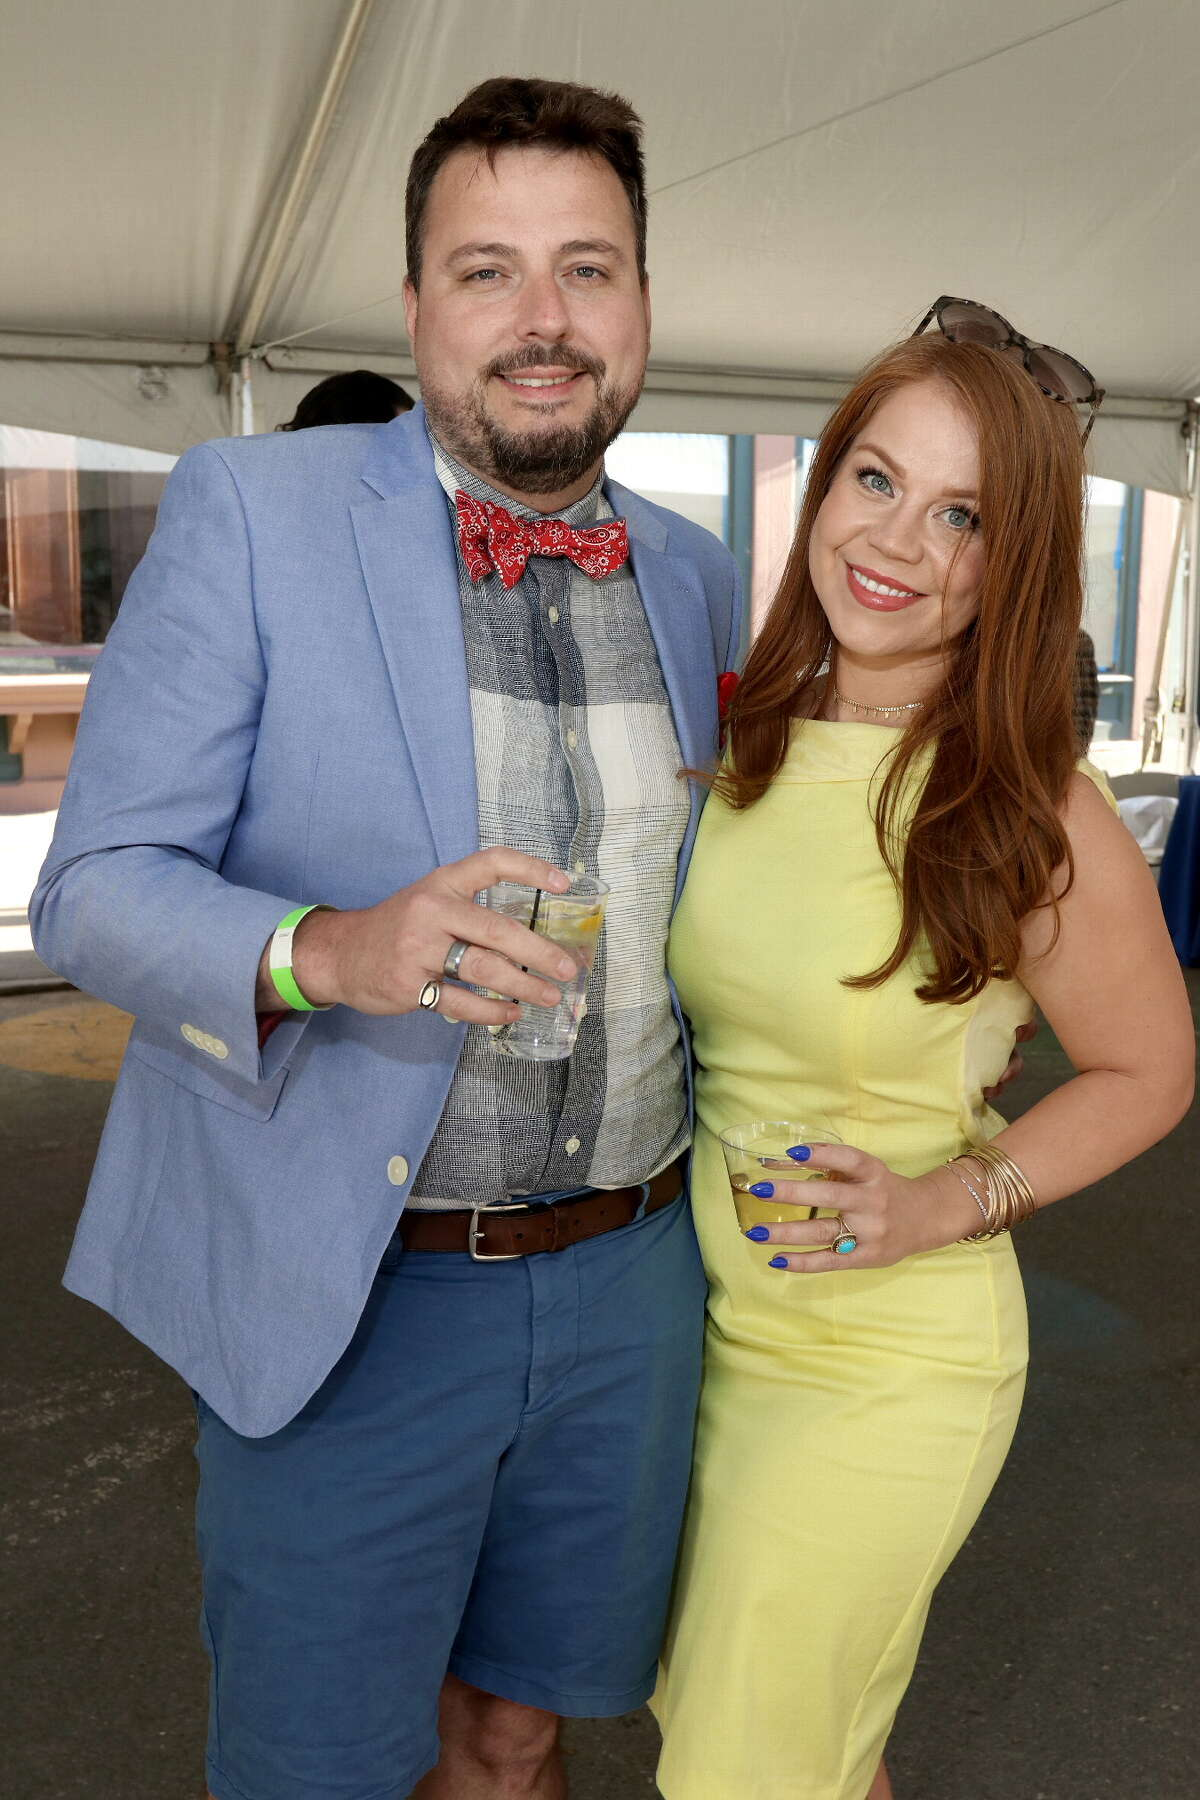 Were you Seen at The Arts Center of the Capital Region's Gala honoring Leslie Cheu and The Troy Savings Bank Charitable Foundation, and Robert McCarthy and The McCarthy Charities on June 23, 2021, In Troy, N.Y.?